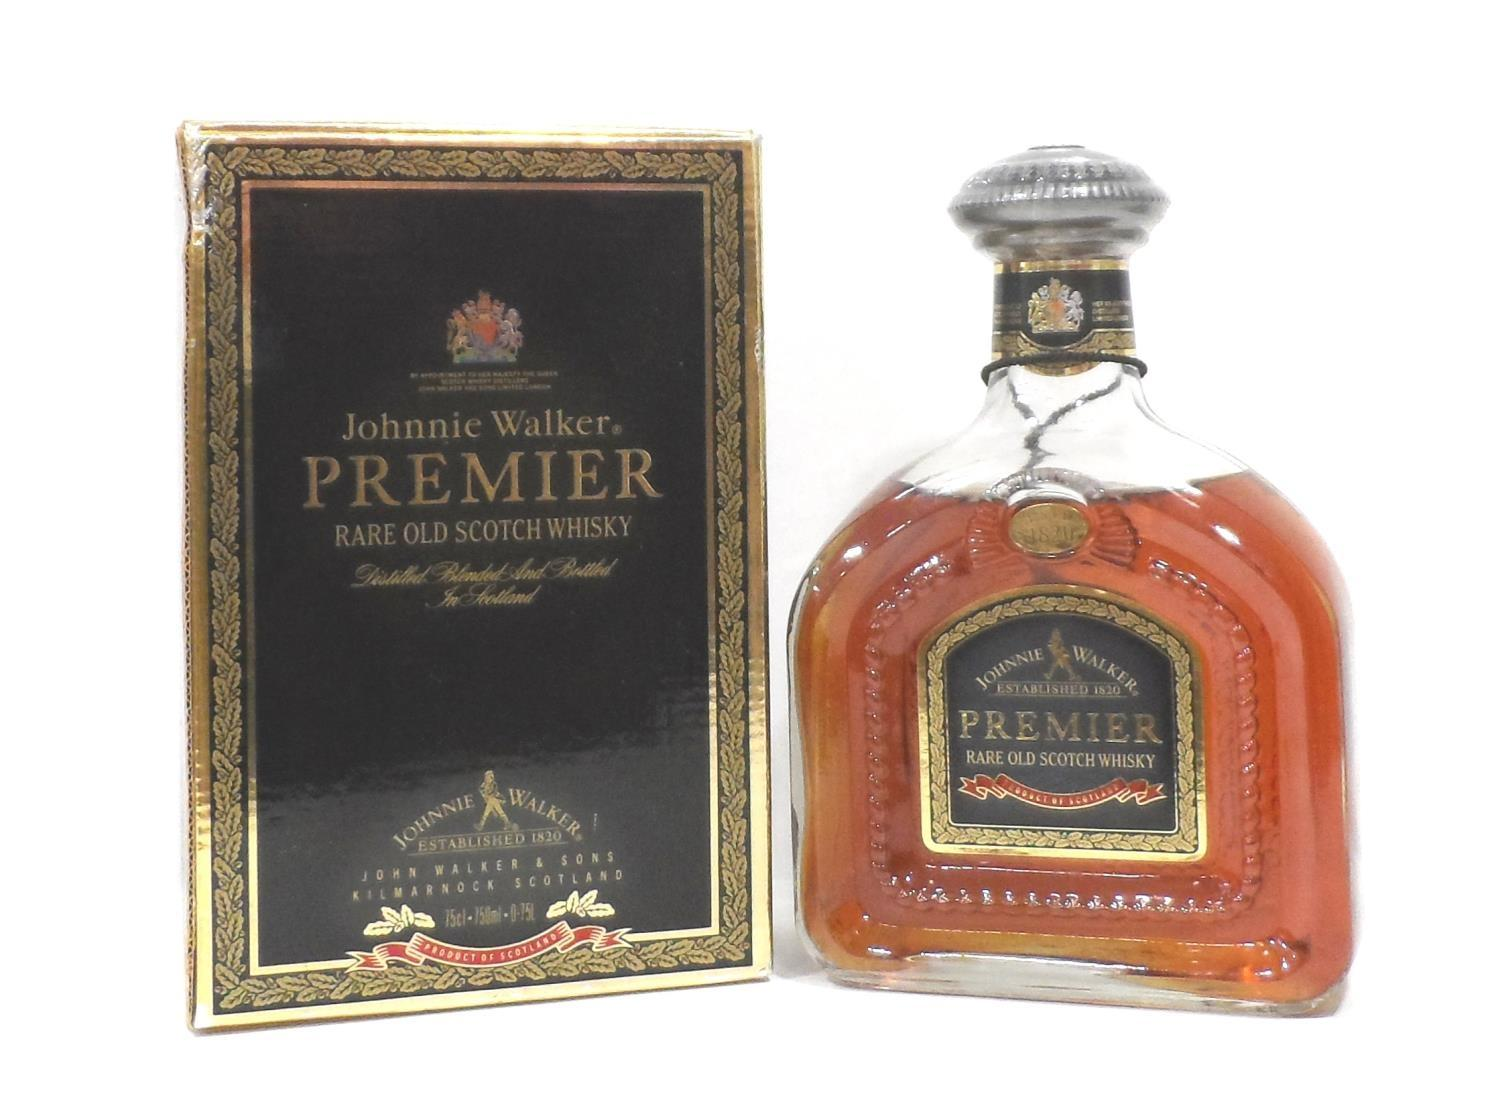 JOHNNIE WALKER PREMIER A bottle of rare and exclusive whiskies blended into this example of the